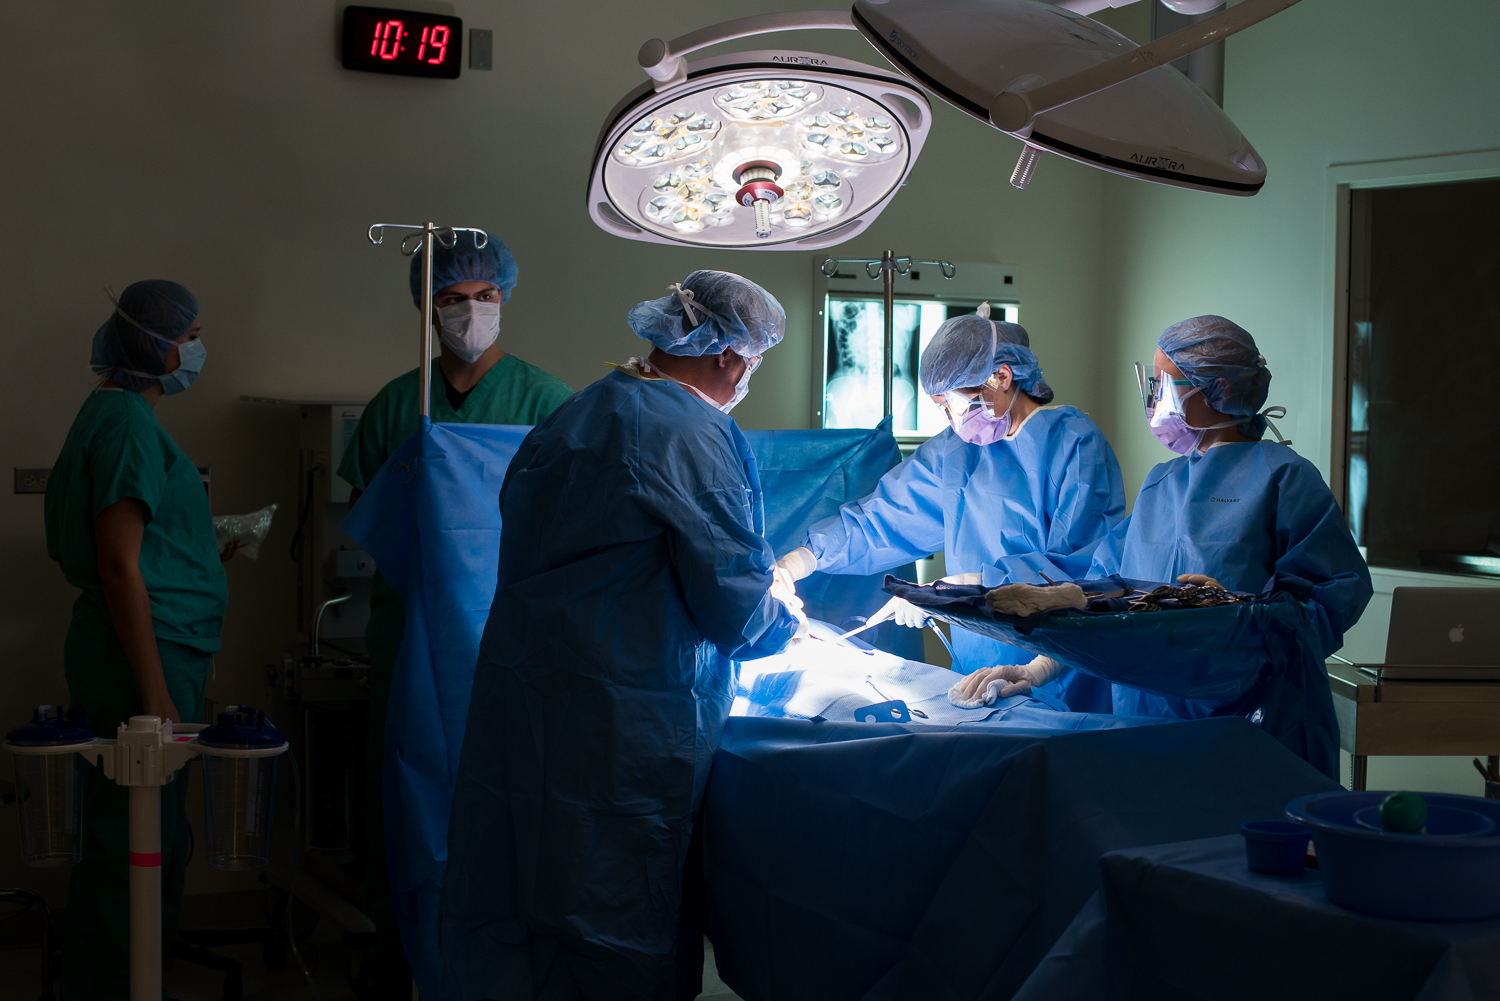 Surgical_Suite-8.jpg